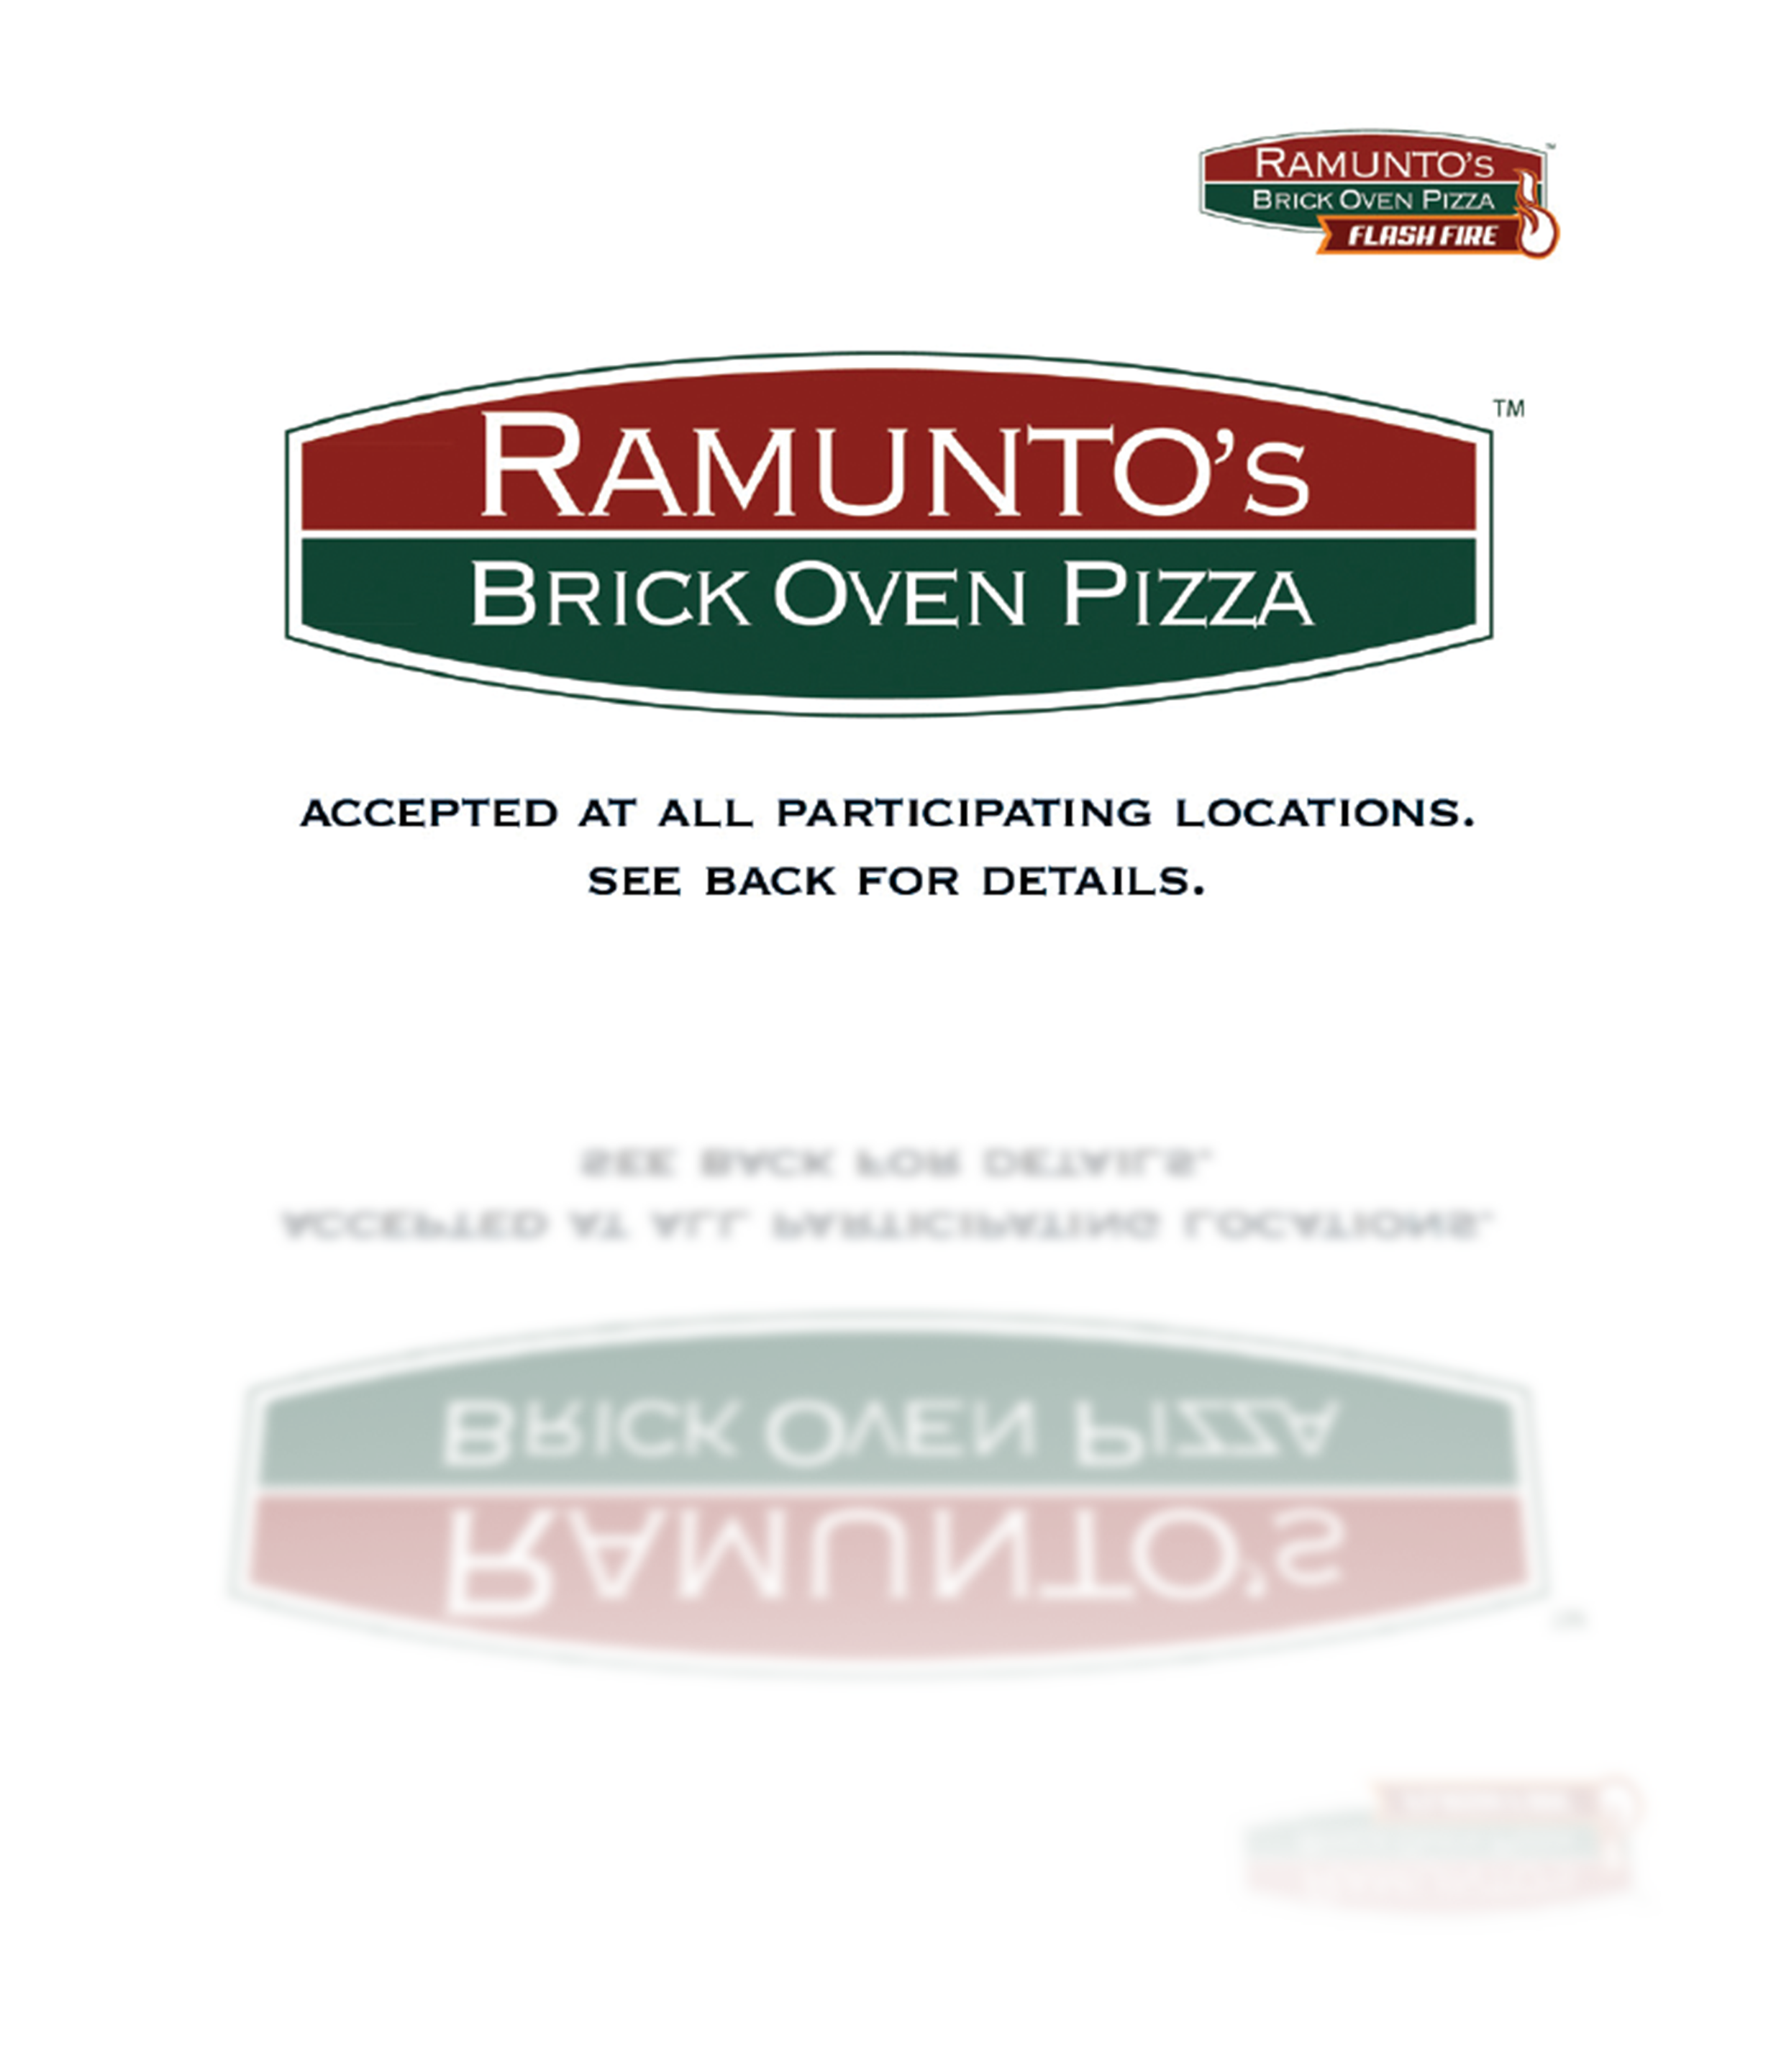 Ramuntos Pizza gift card